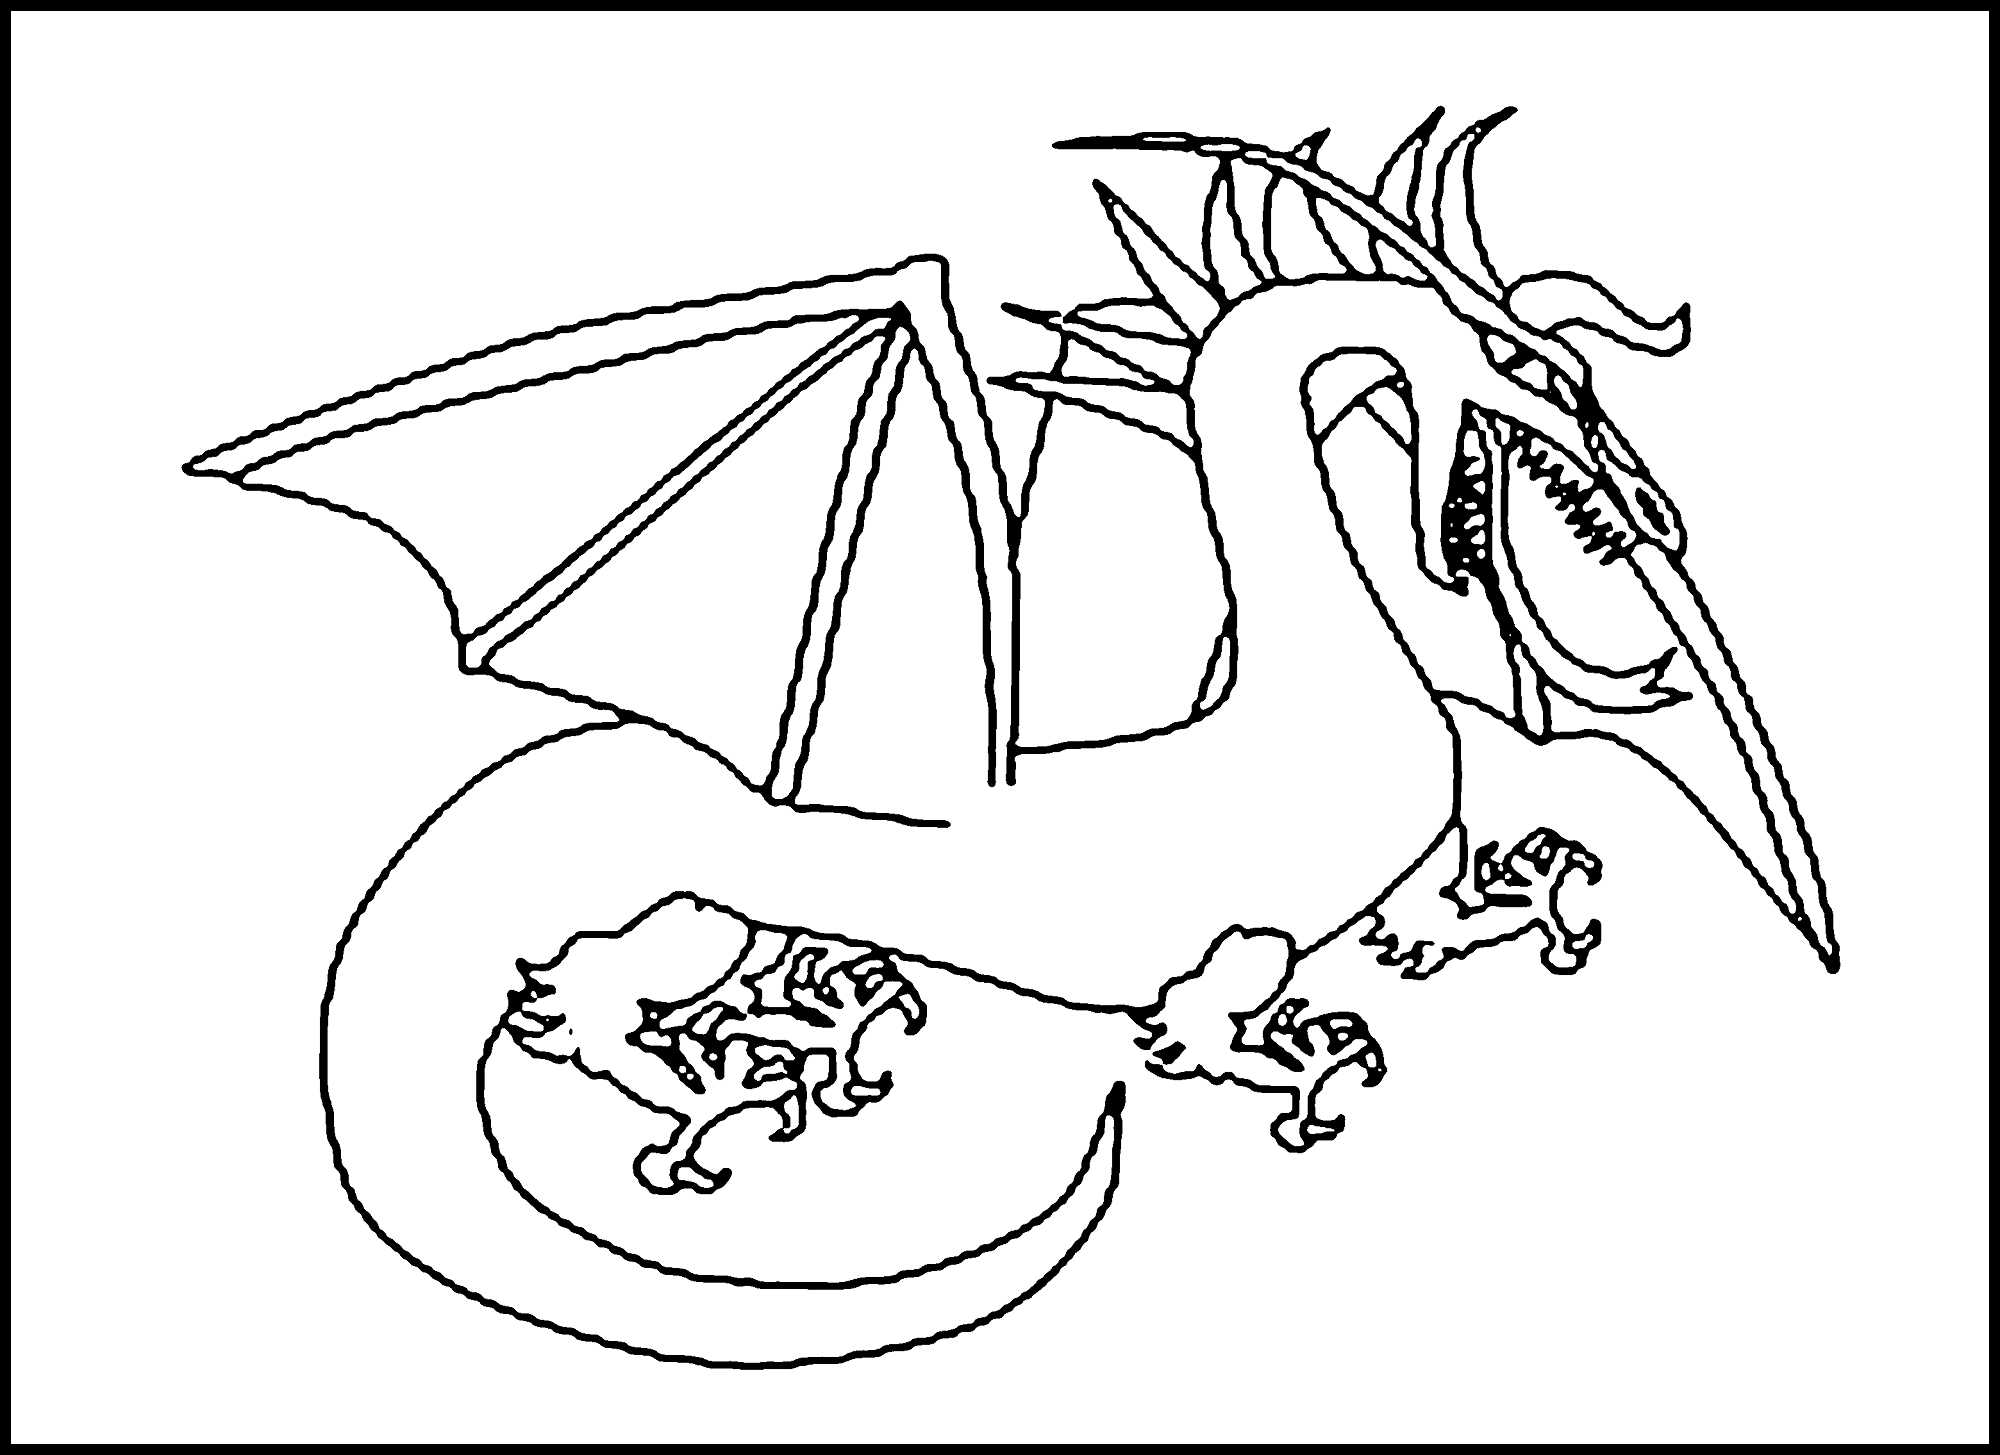 dragon colouring pictures dragon coloring pages printable activity shelter colouring pictures dragon 1 1